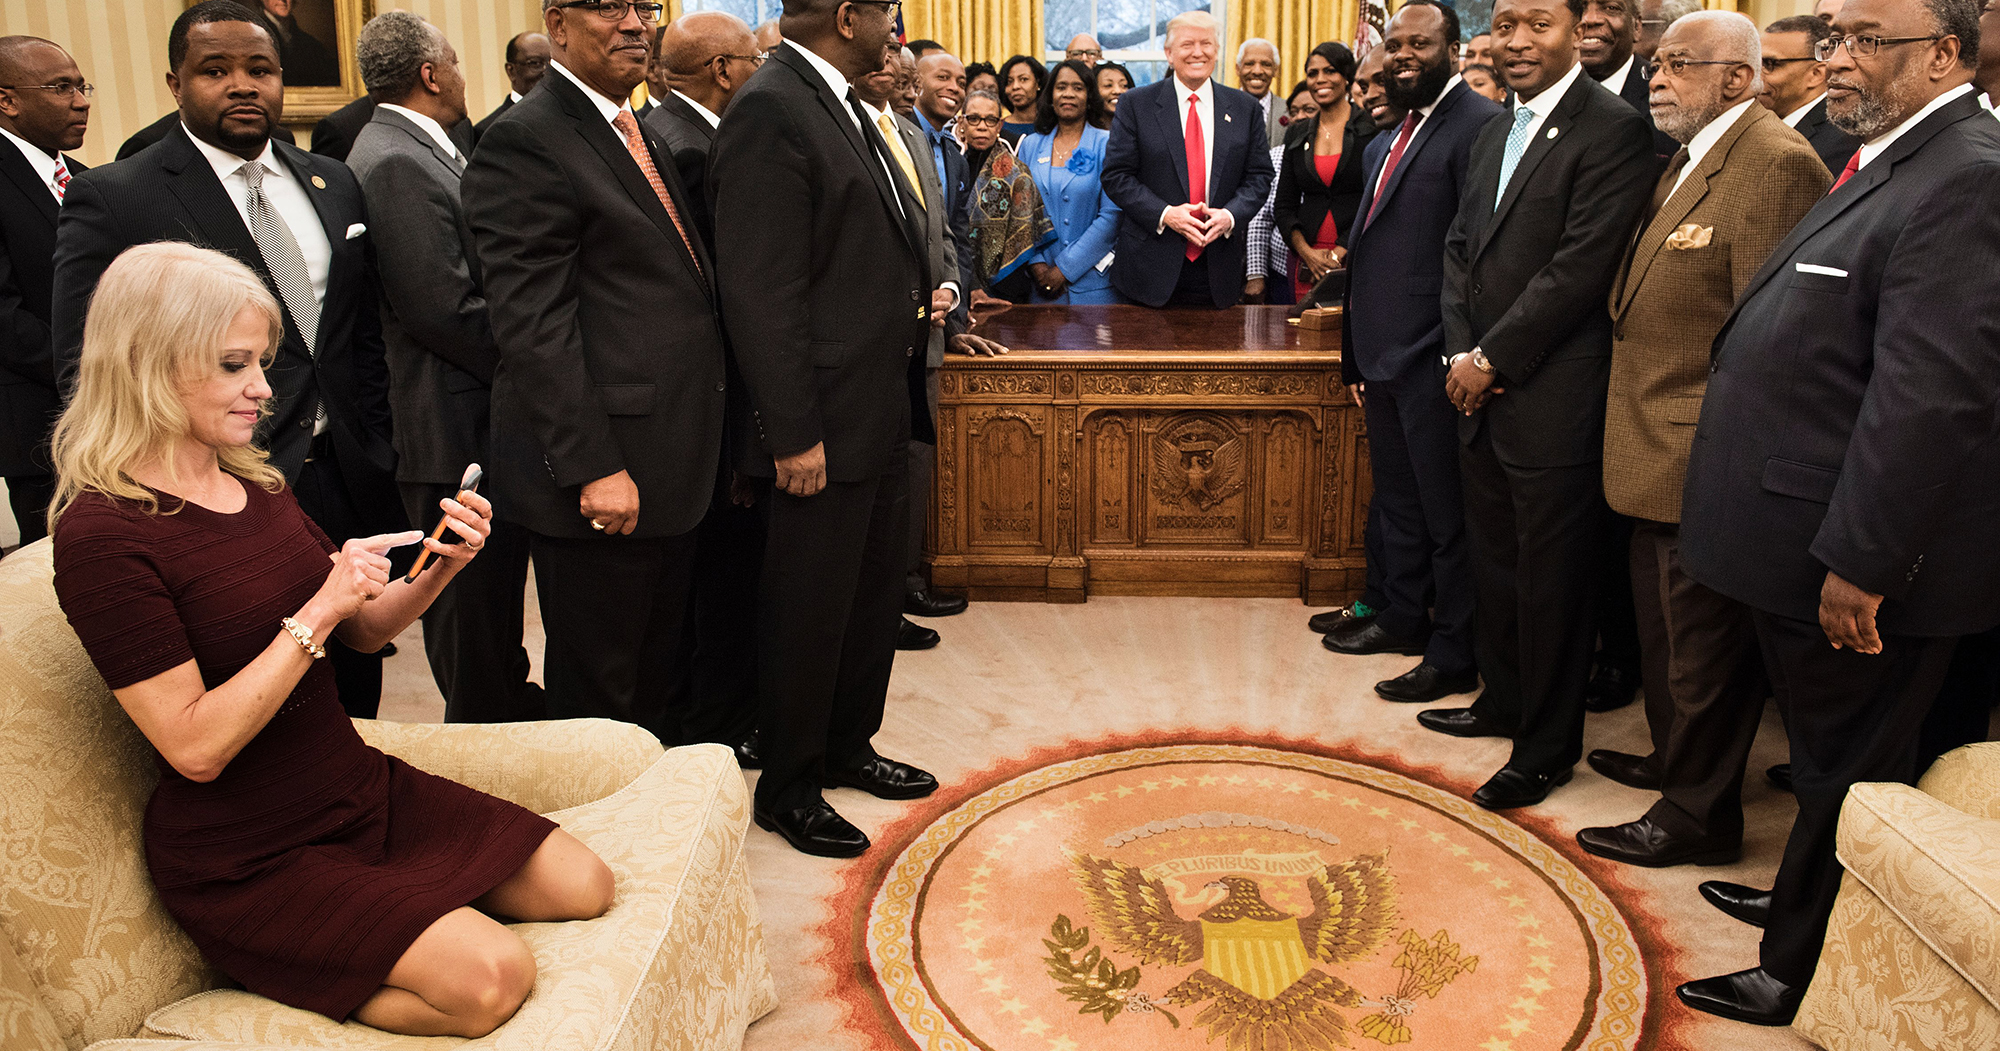 Counselor to the President Kellyanne Conway checks her phone after taking a photo as President Donald Trump and leaders of historically black universities and colleges pose for a group photo in the Oval Office, on Feb. 27, 2017 in Washington, D.C.